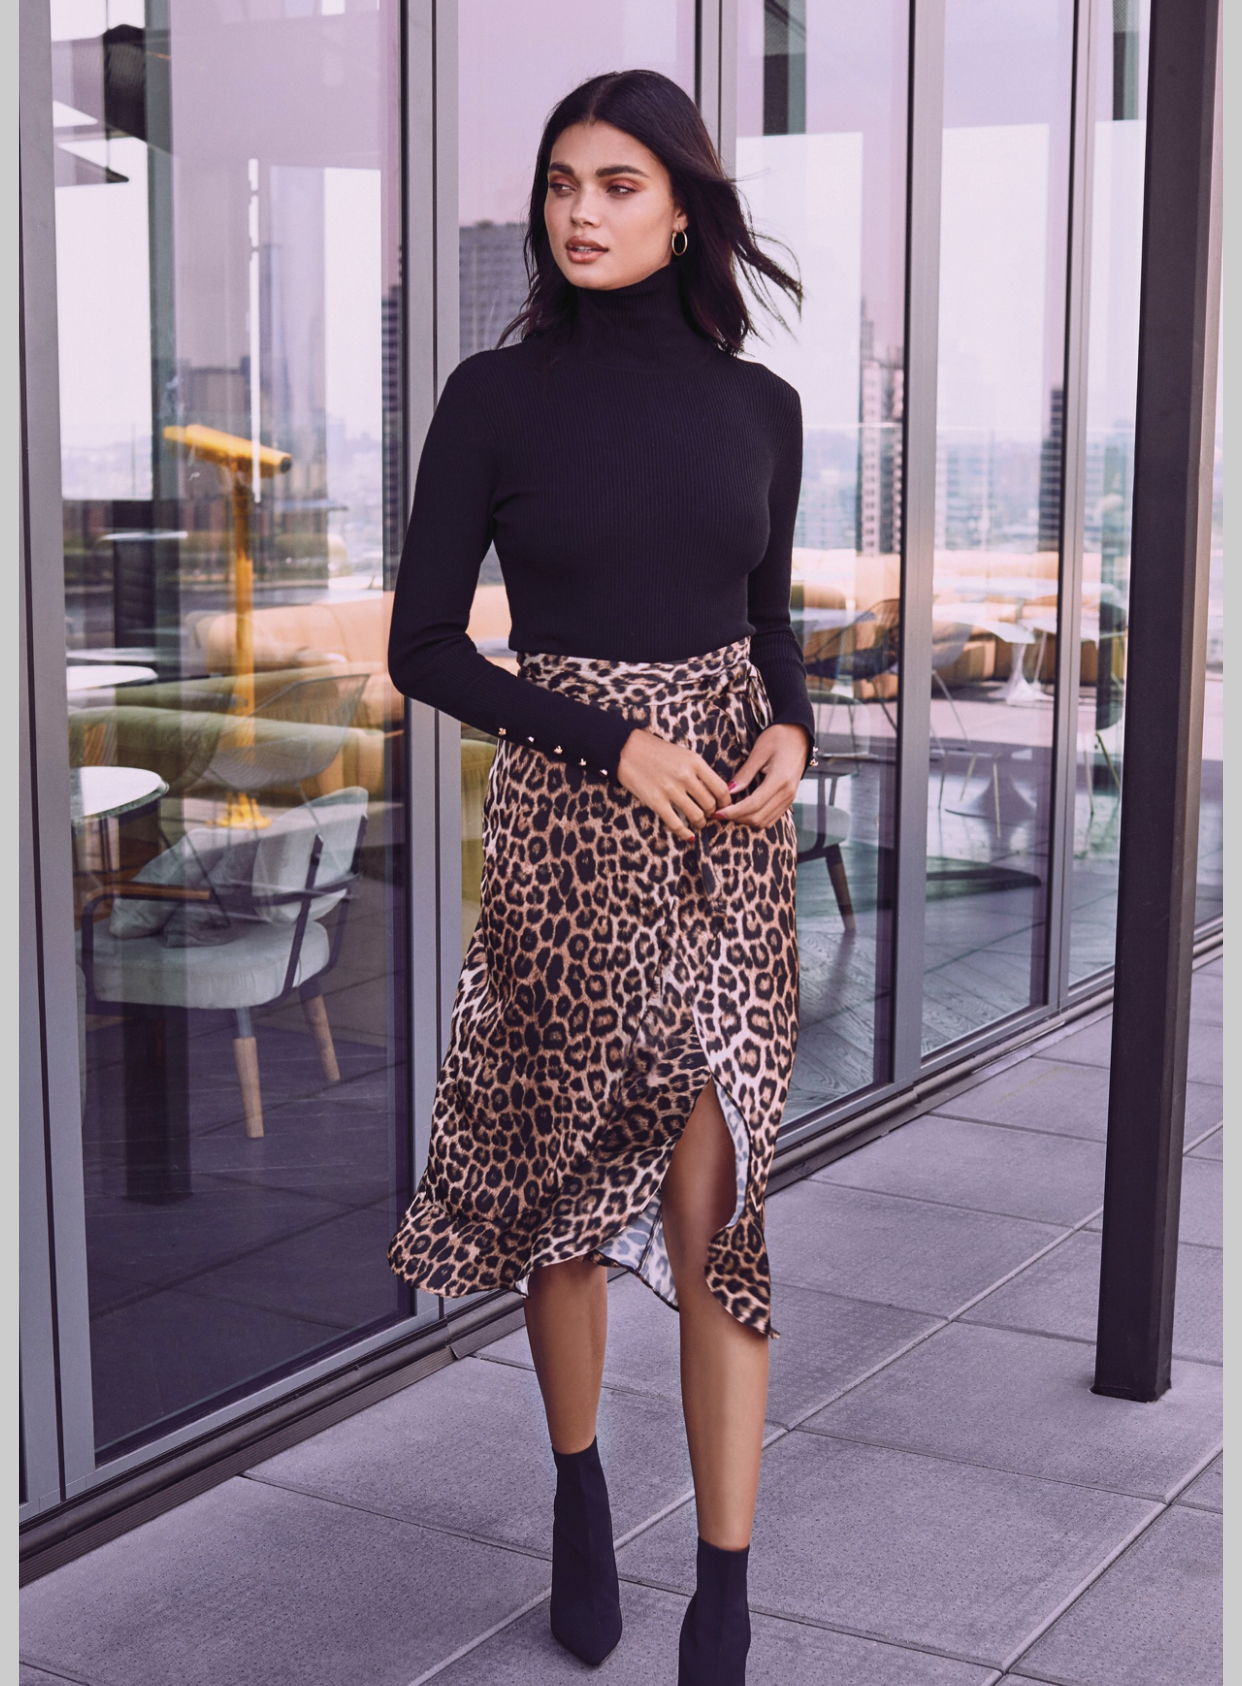 SO obsessed with the leopard print trend again!